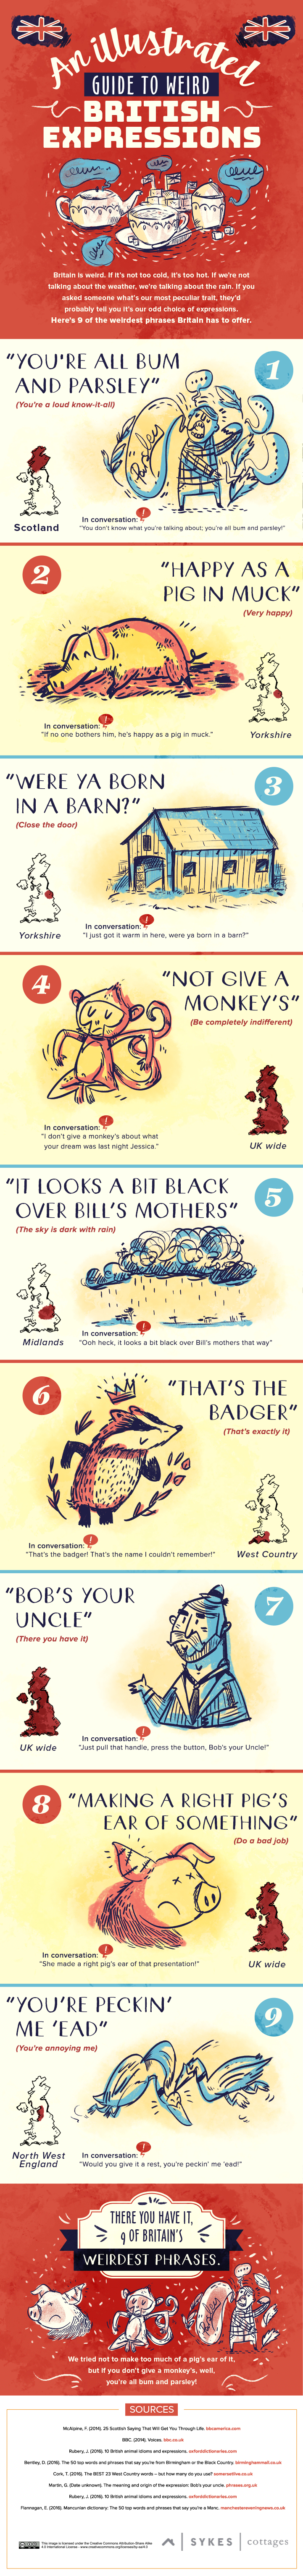 Illustrated Guide To Weird British Expression